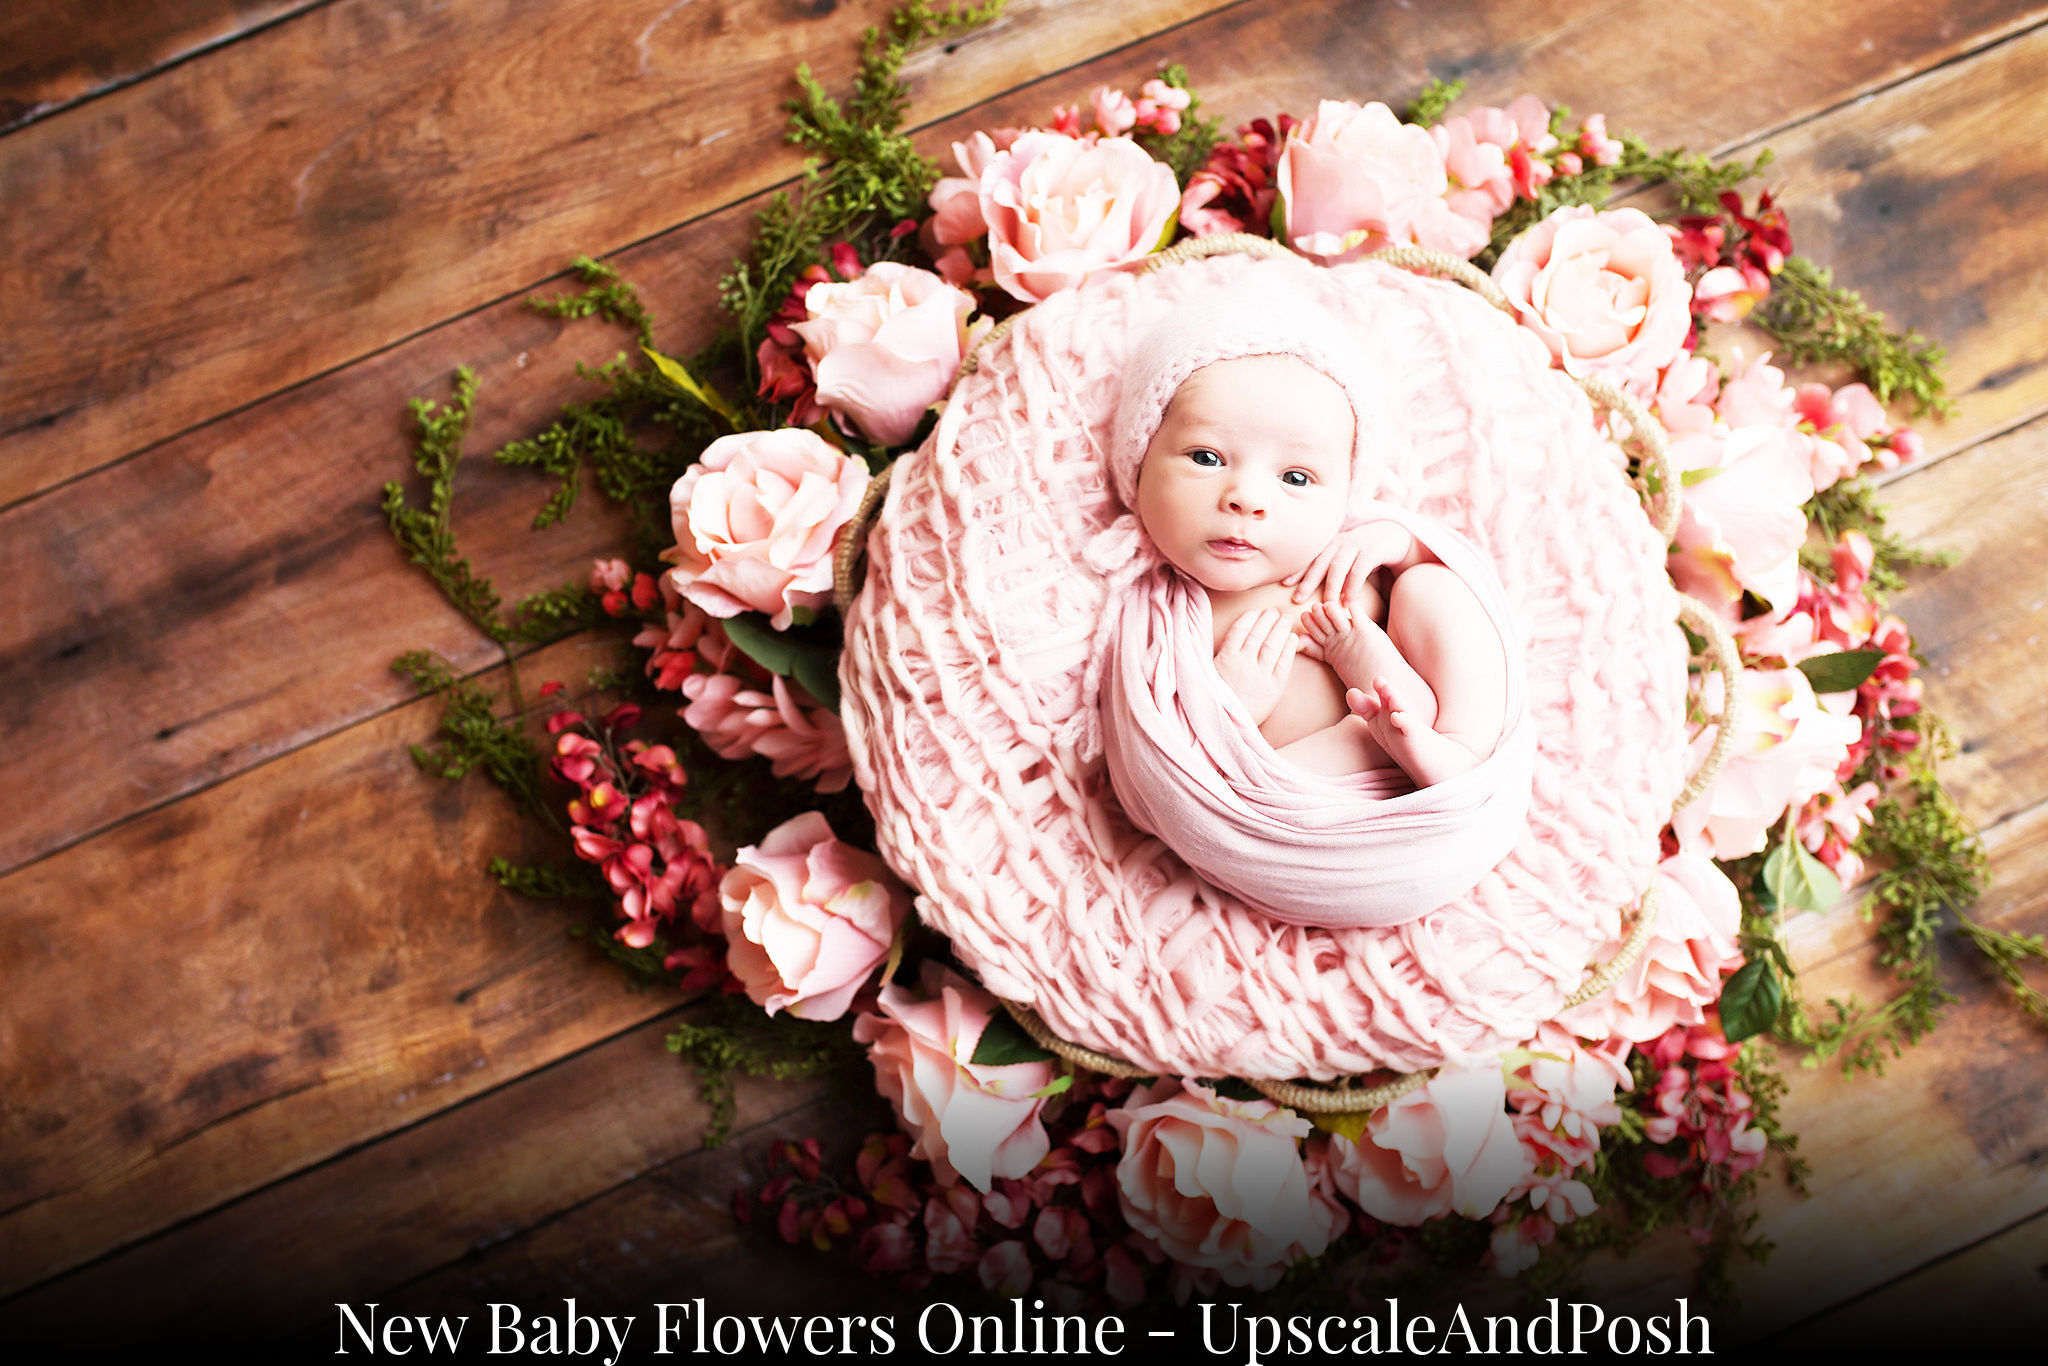 New baby flowers newborn flowers delivery new mom flowers in dubai upscale and posh